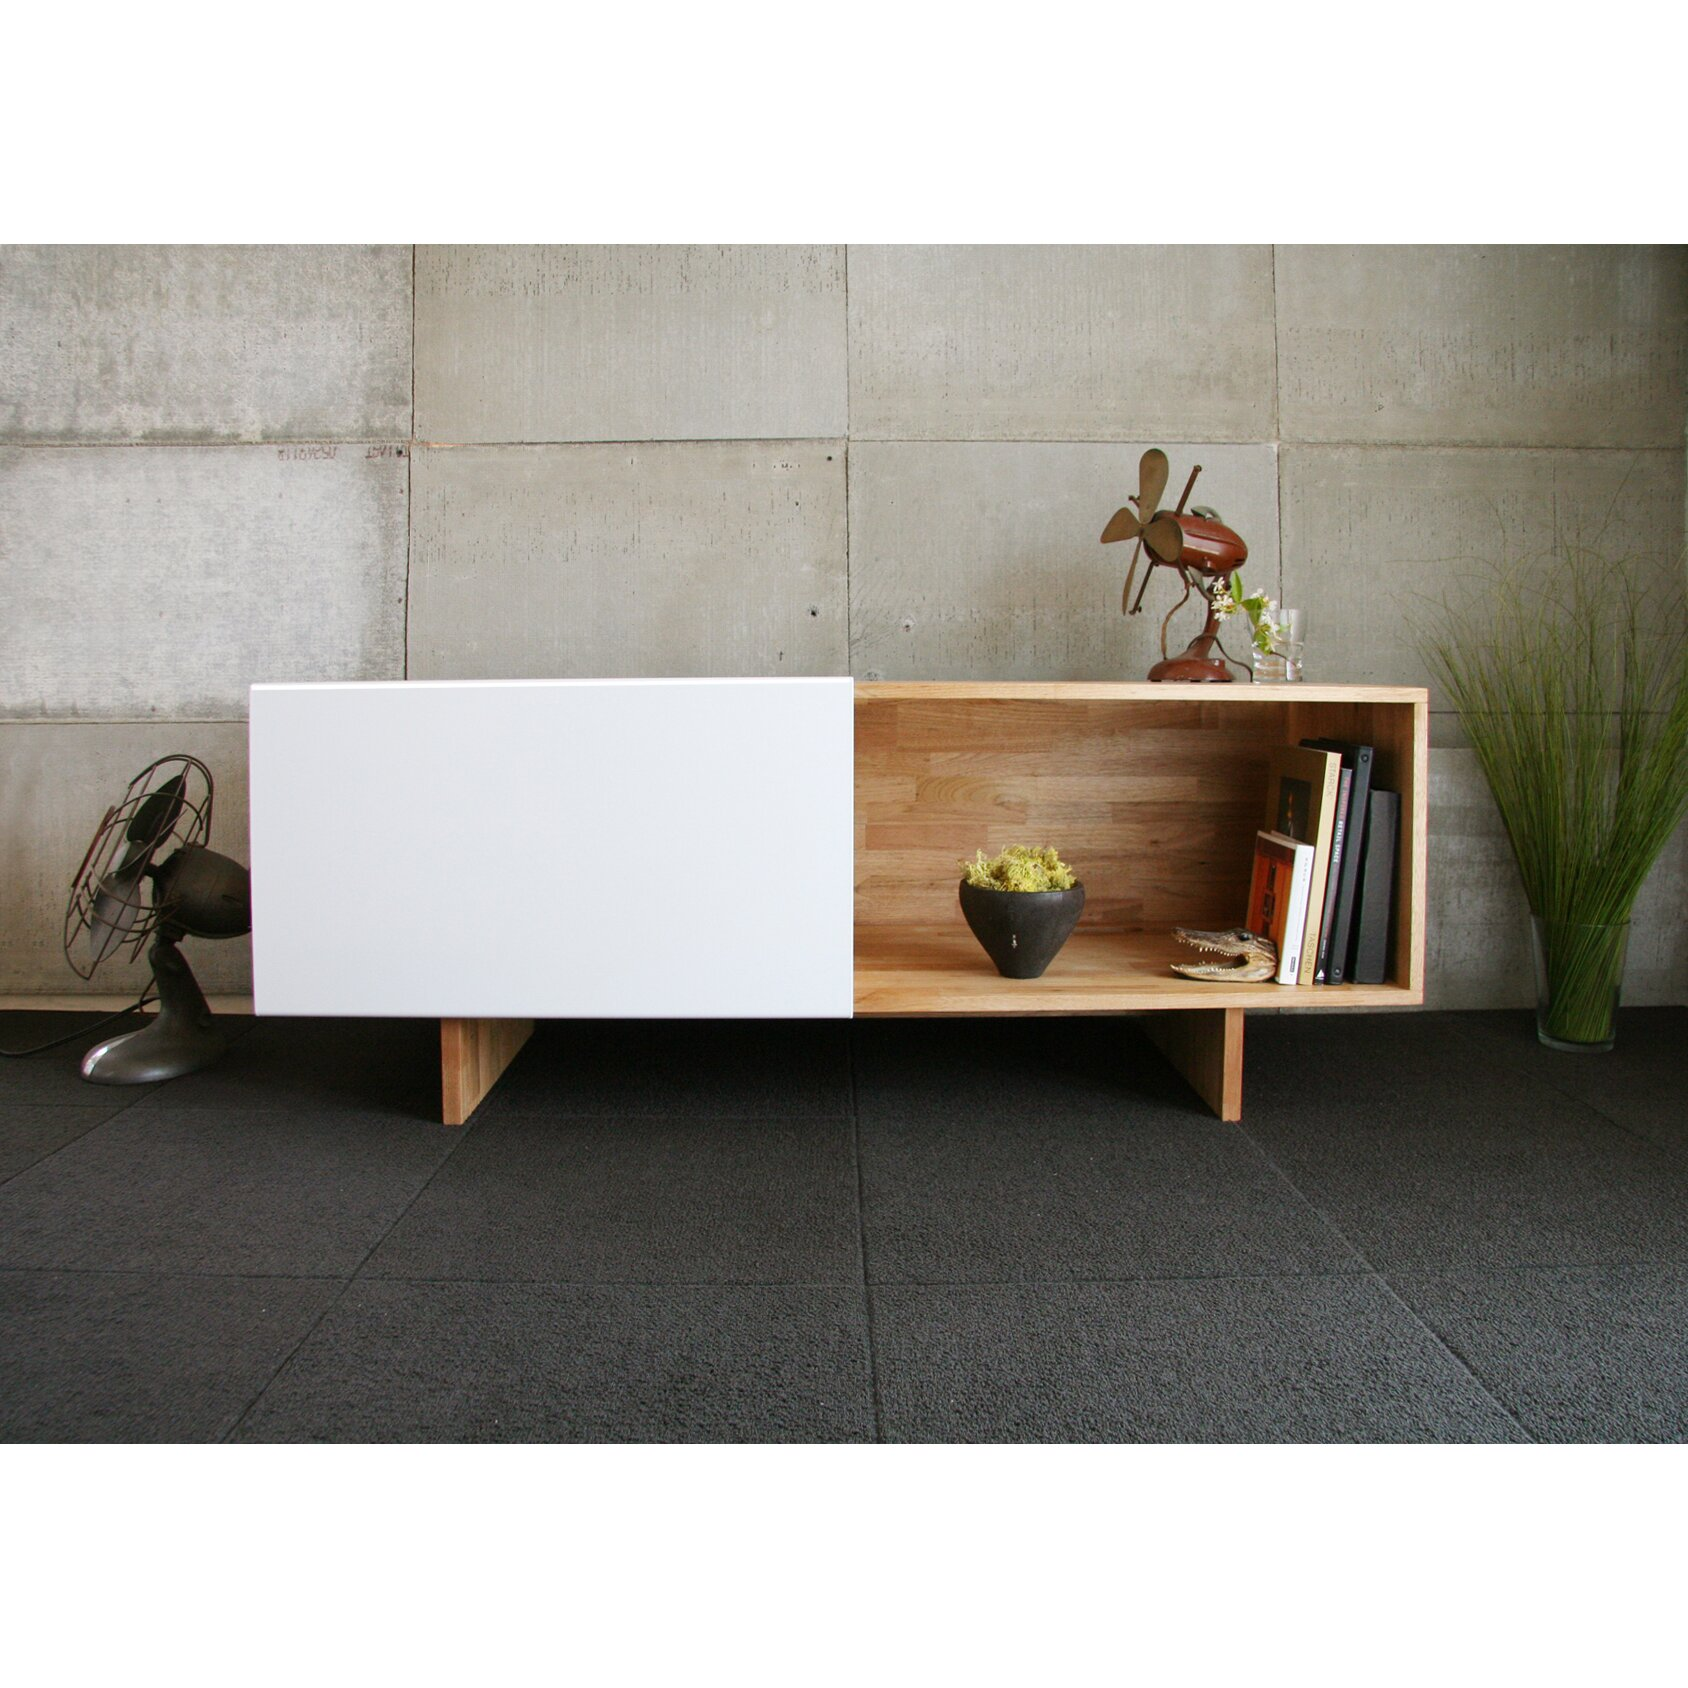 Lax series tv stand reviews allmodern for Mash studios lax